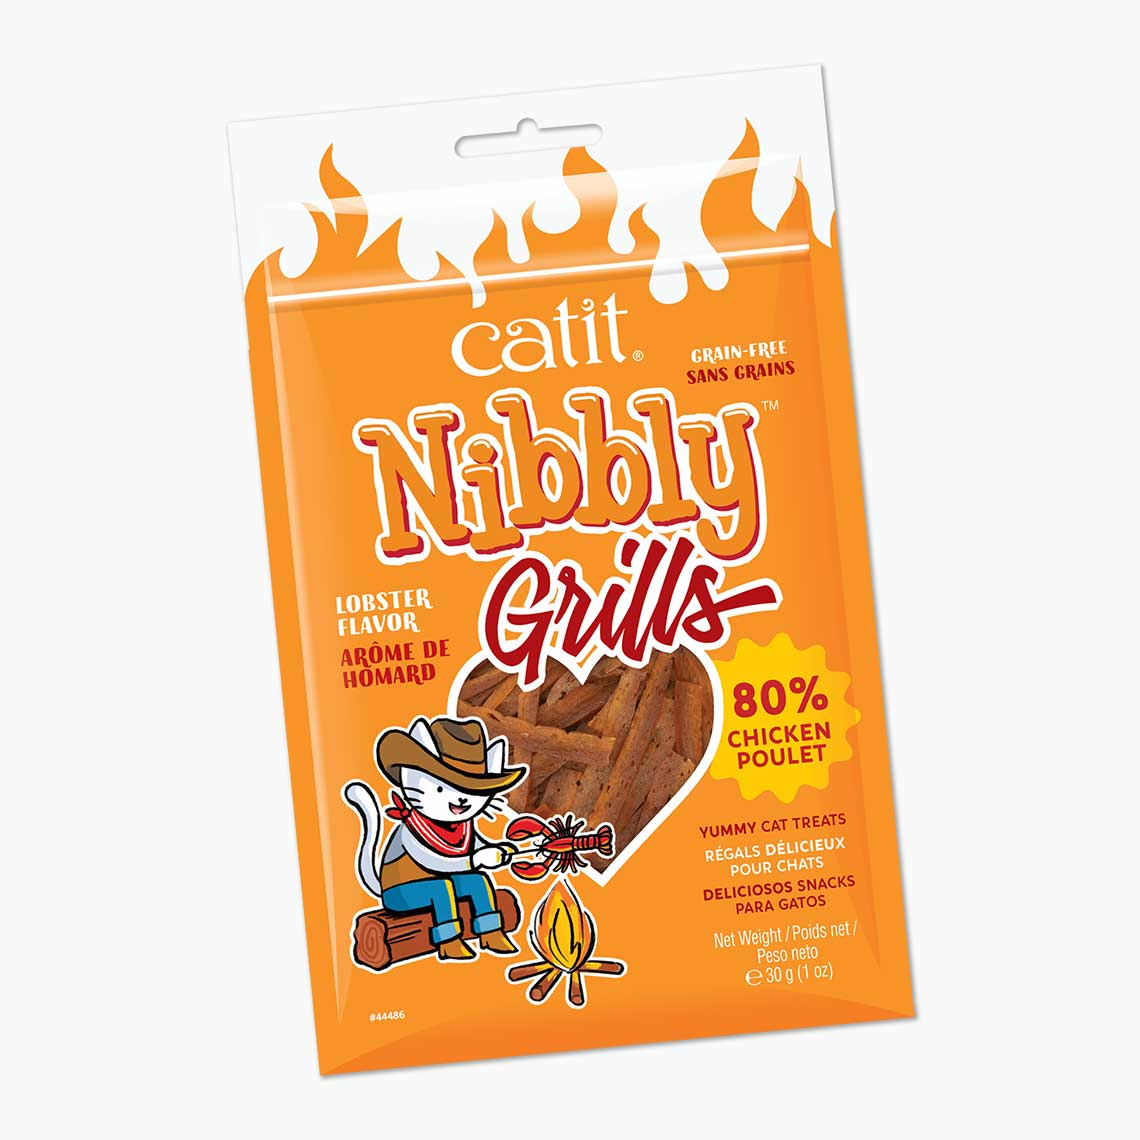 Catit Nibbly Grills Lobster Flavored Dog Treats, 1-oz